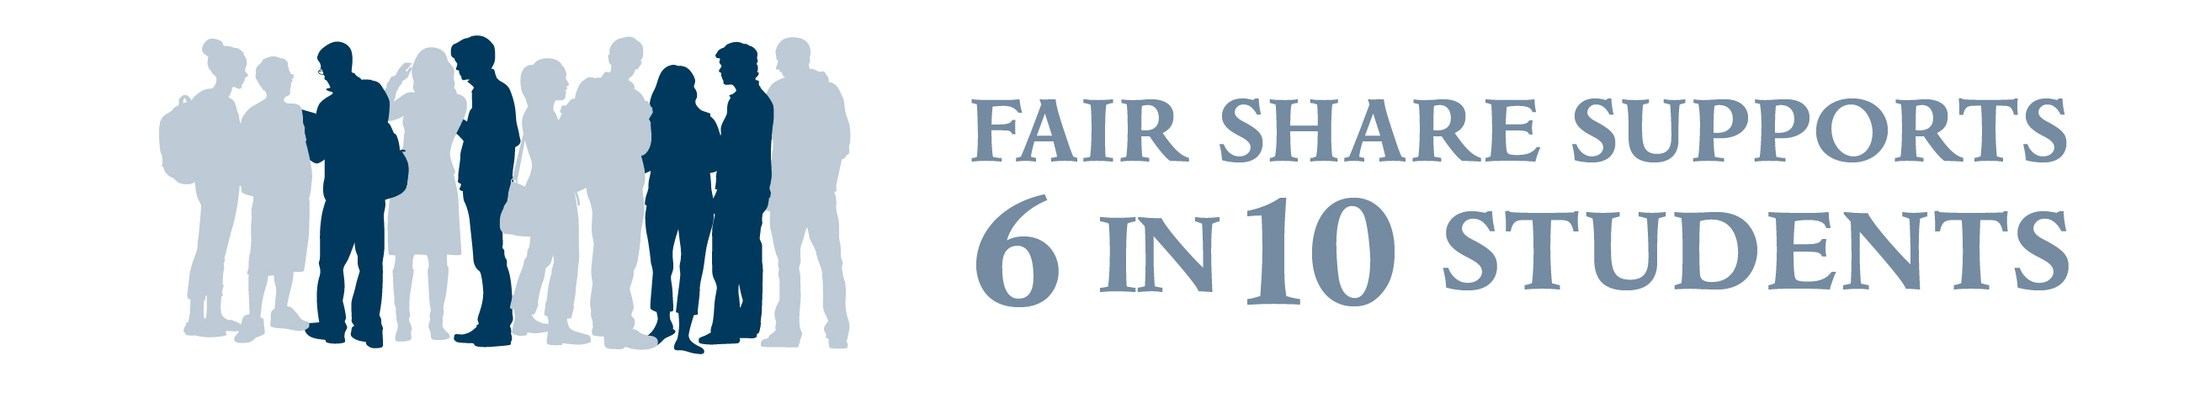 Fair Share Supports